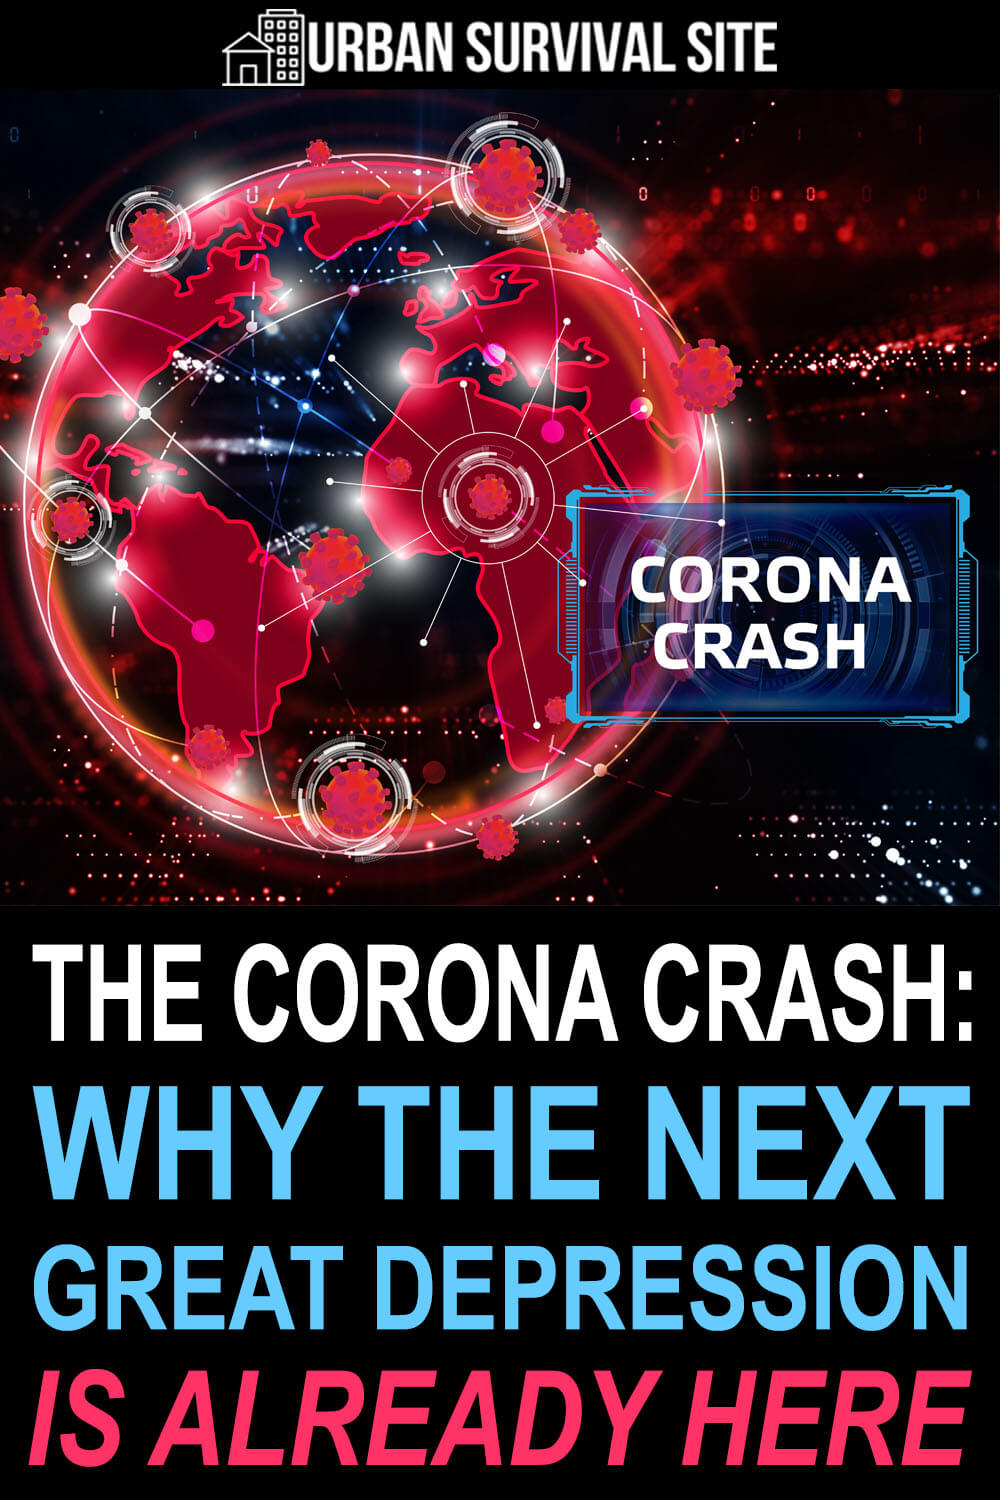 The Corona Crash: Why The Next Great Depression Is Already Here